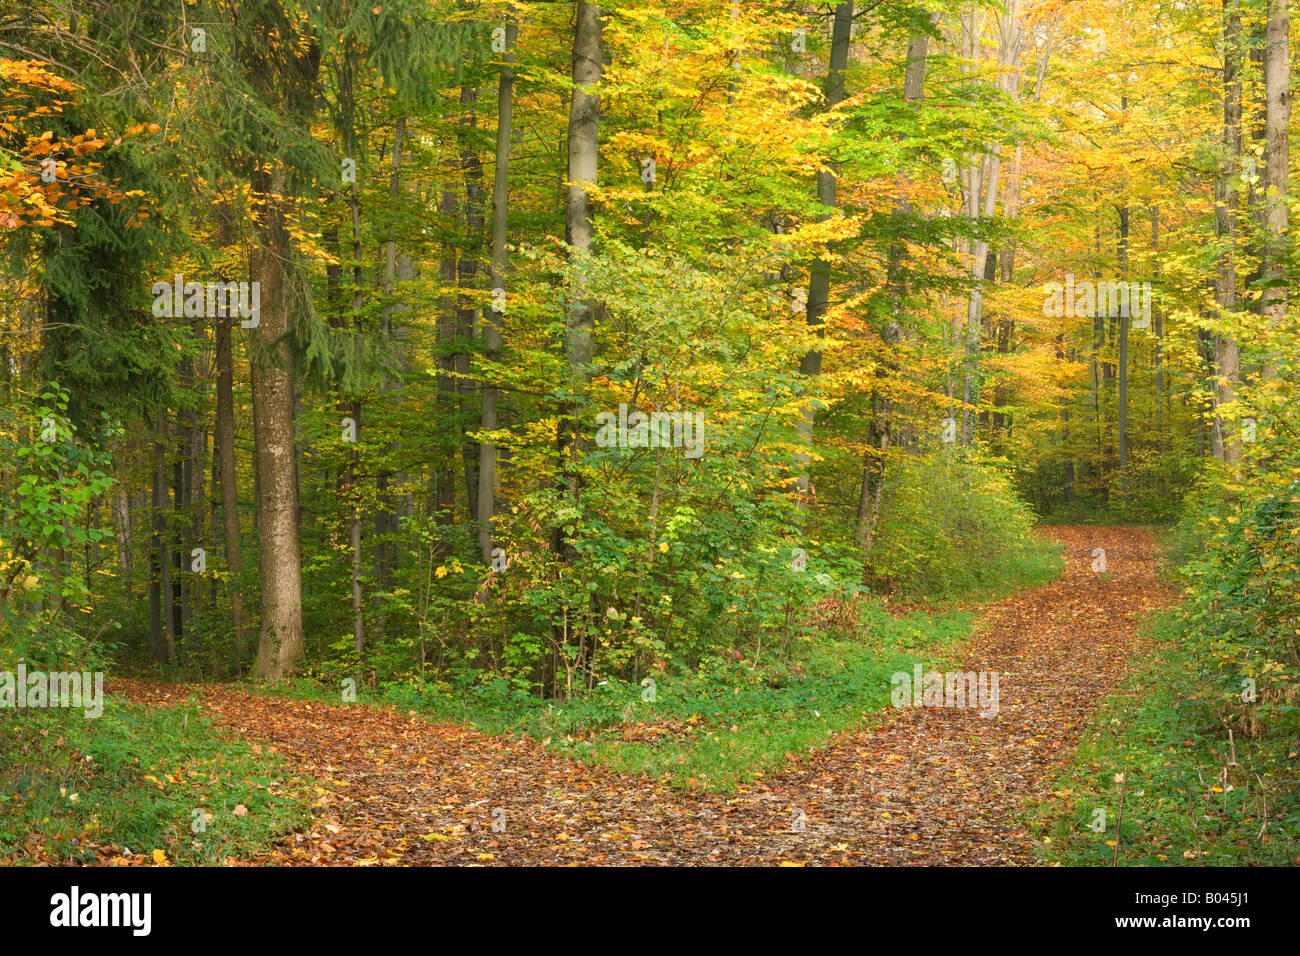 at the crossroads forest road divides from one in two roads which each leads in different directions Schwaebische - Stock Image